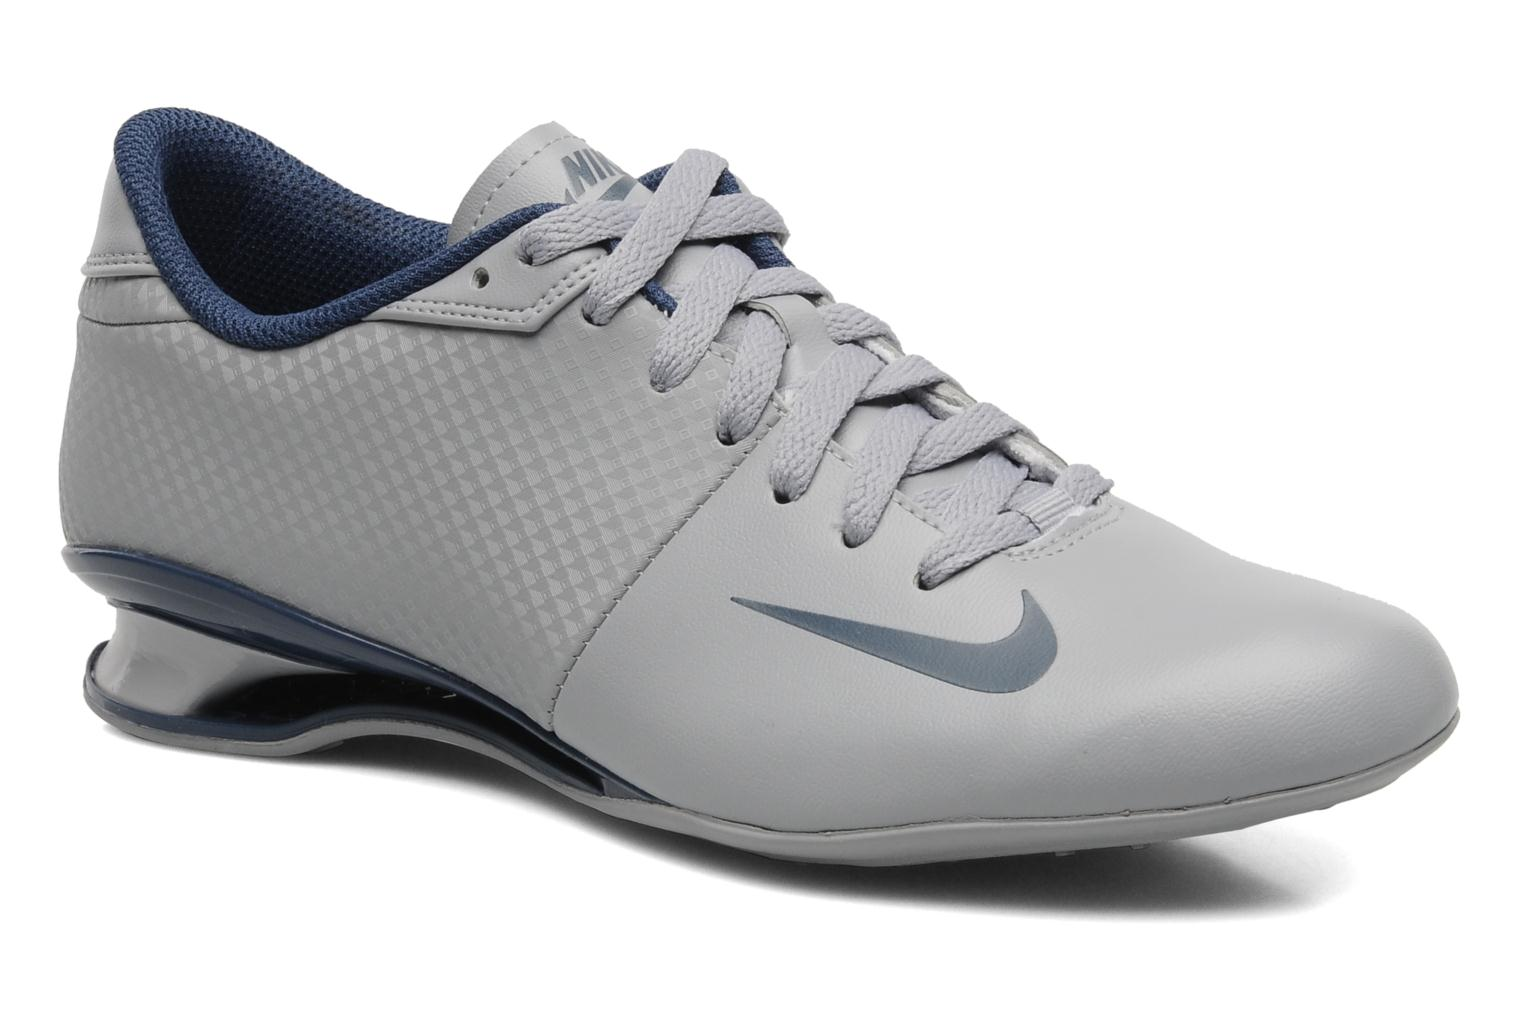 huge selection of 4df0c a3545 nike agile leather for men Shop ...